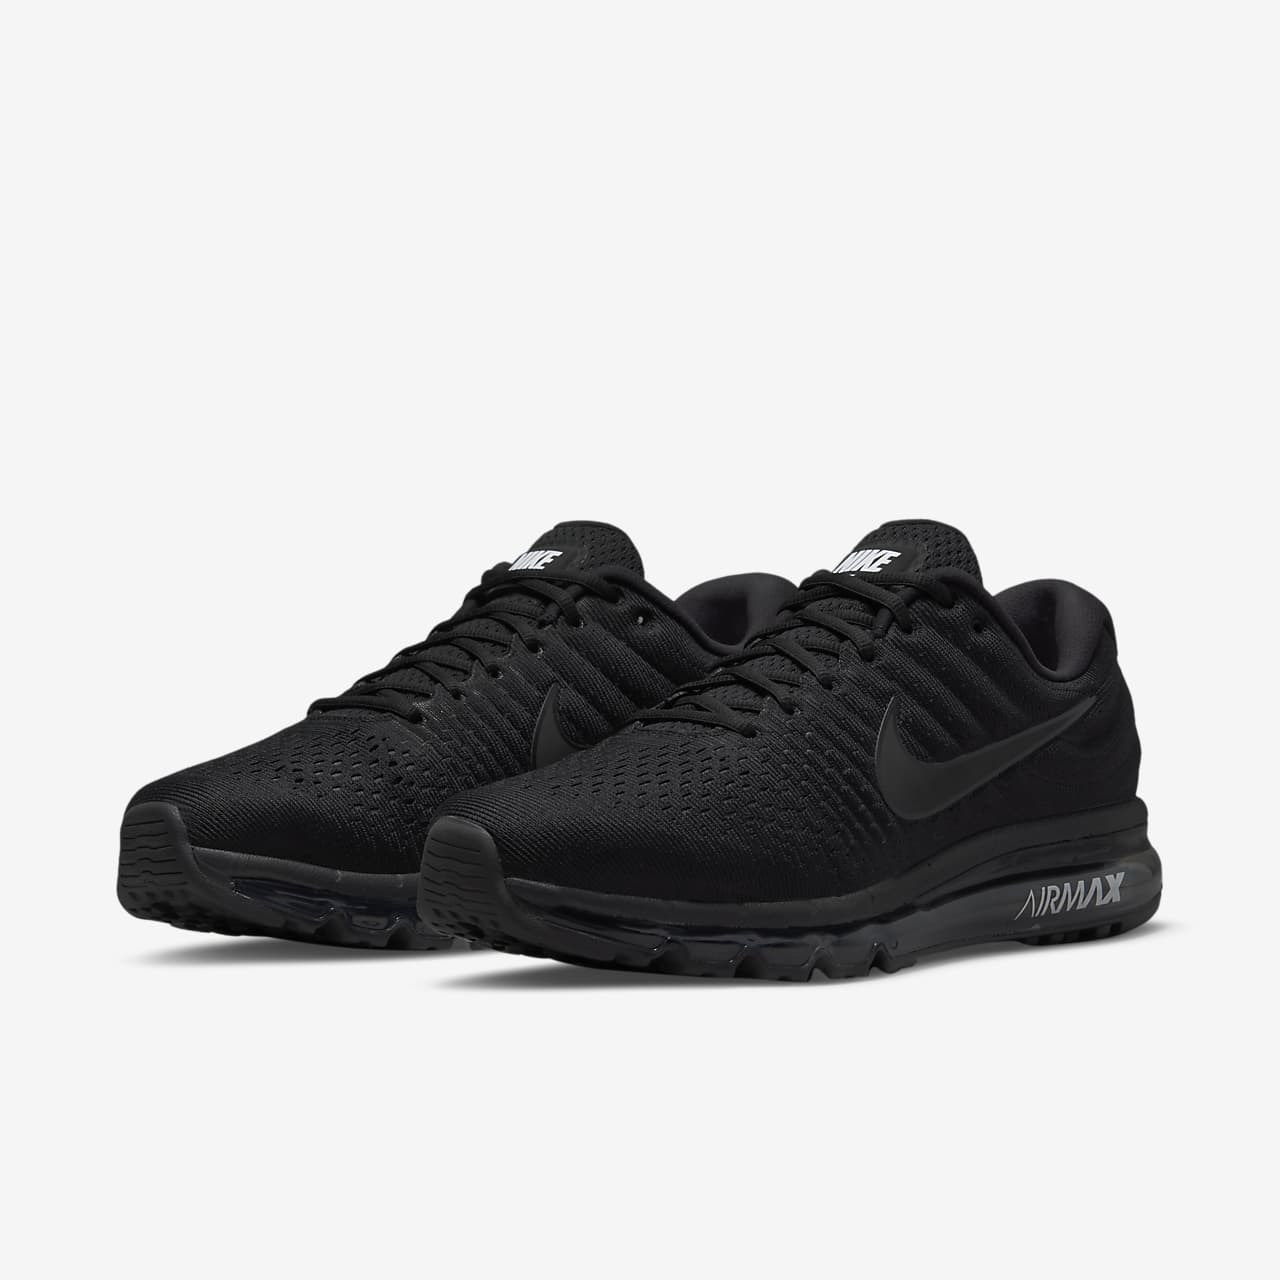 outlet store 0392b 17d5f ... Chaussure Nike Air Max 2017 pour Homme